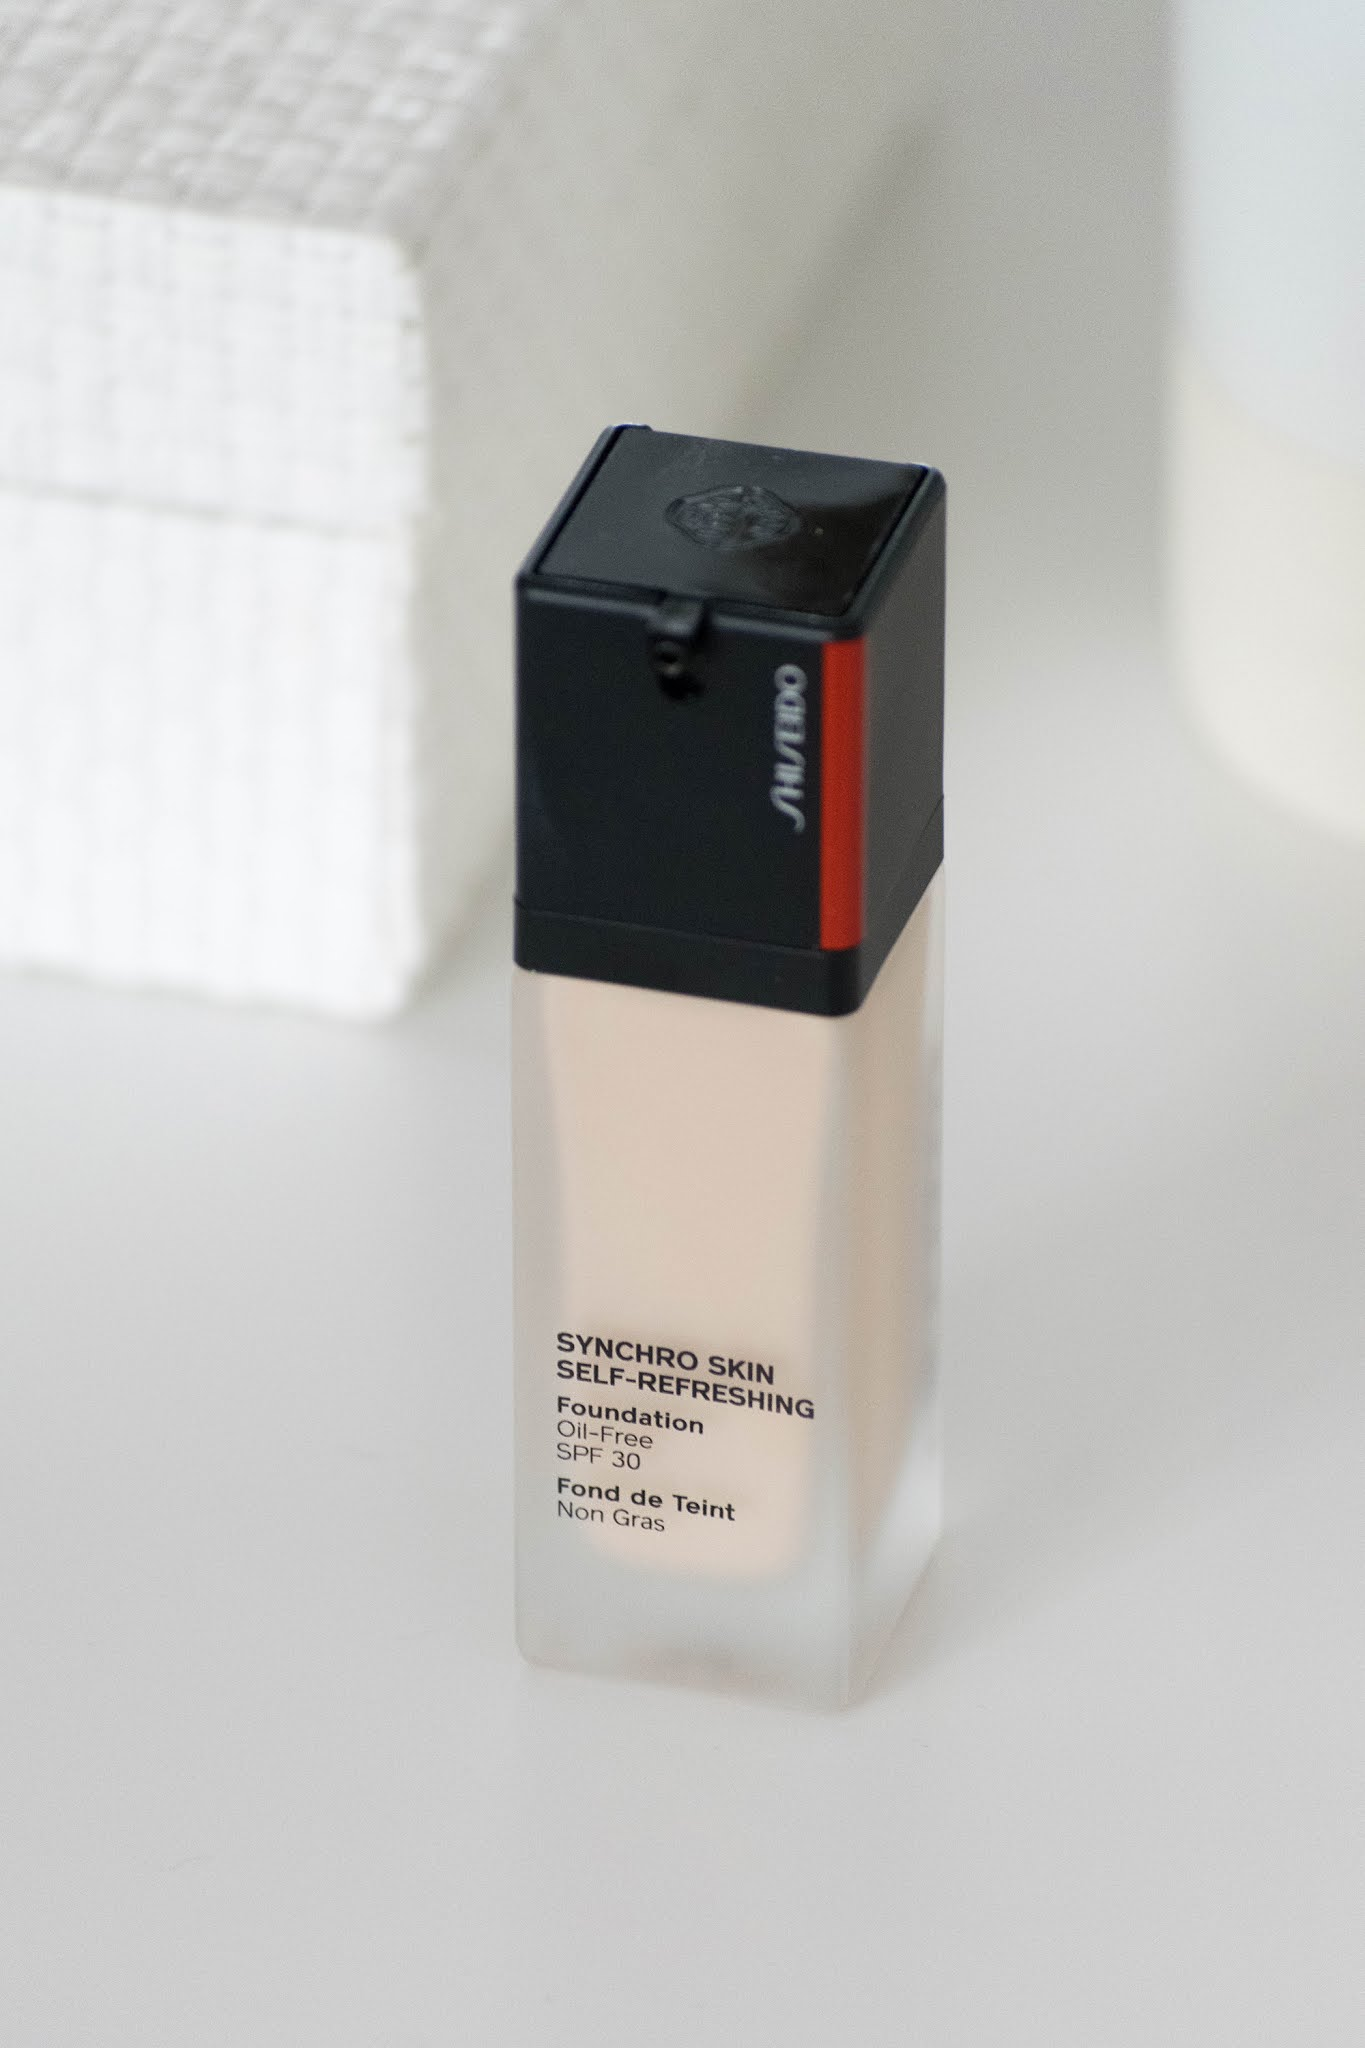 base shiseido synchro skin self refreshing